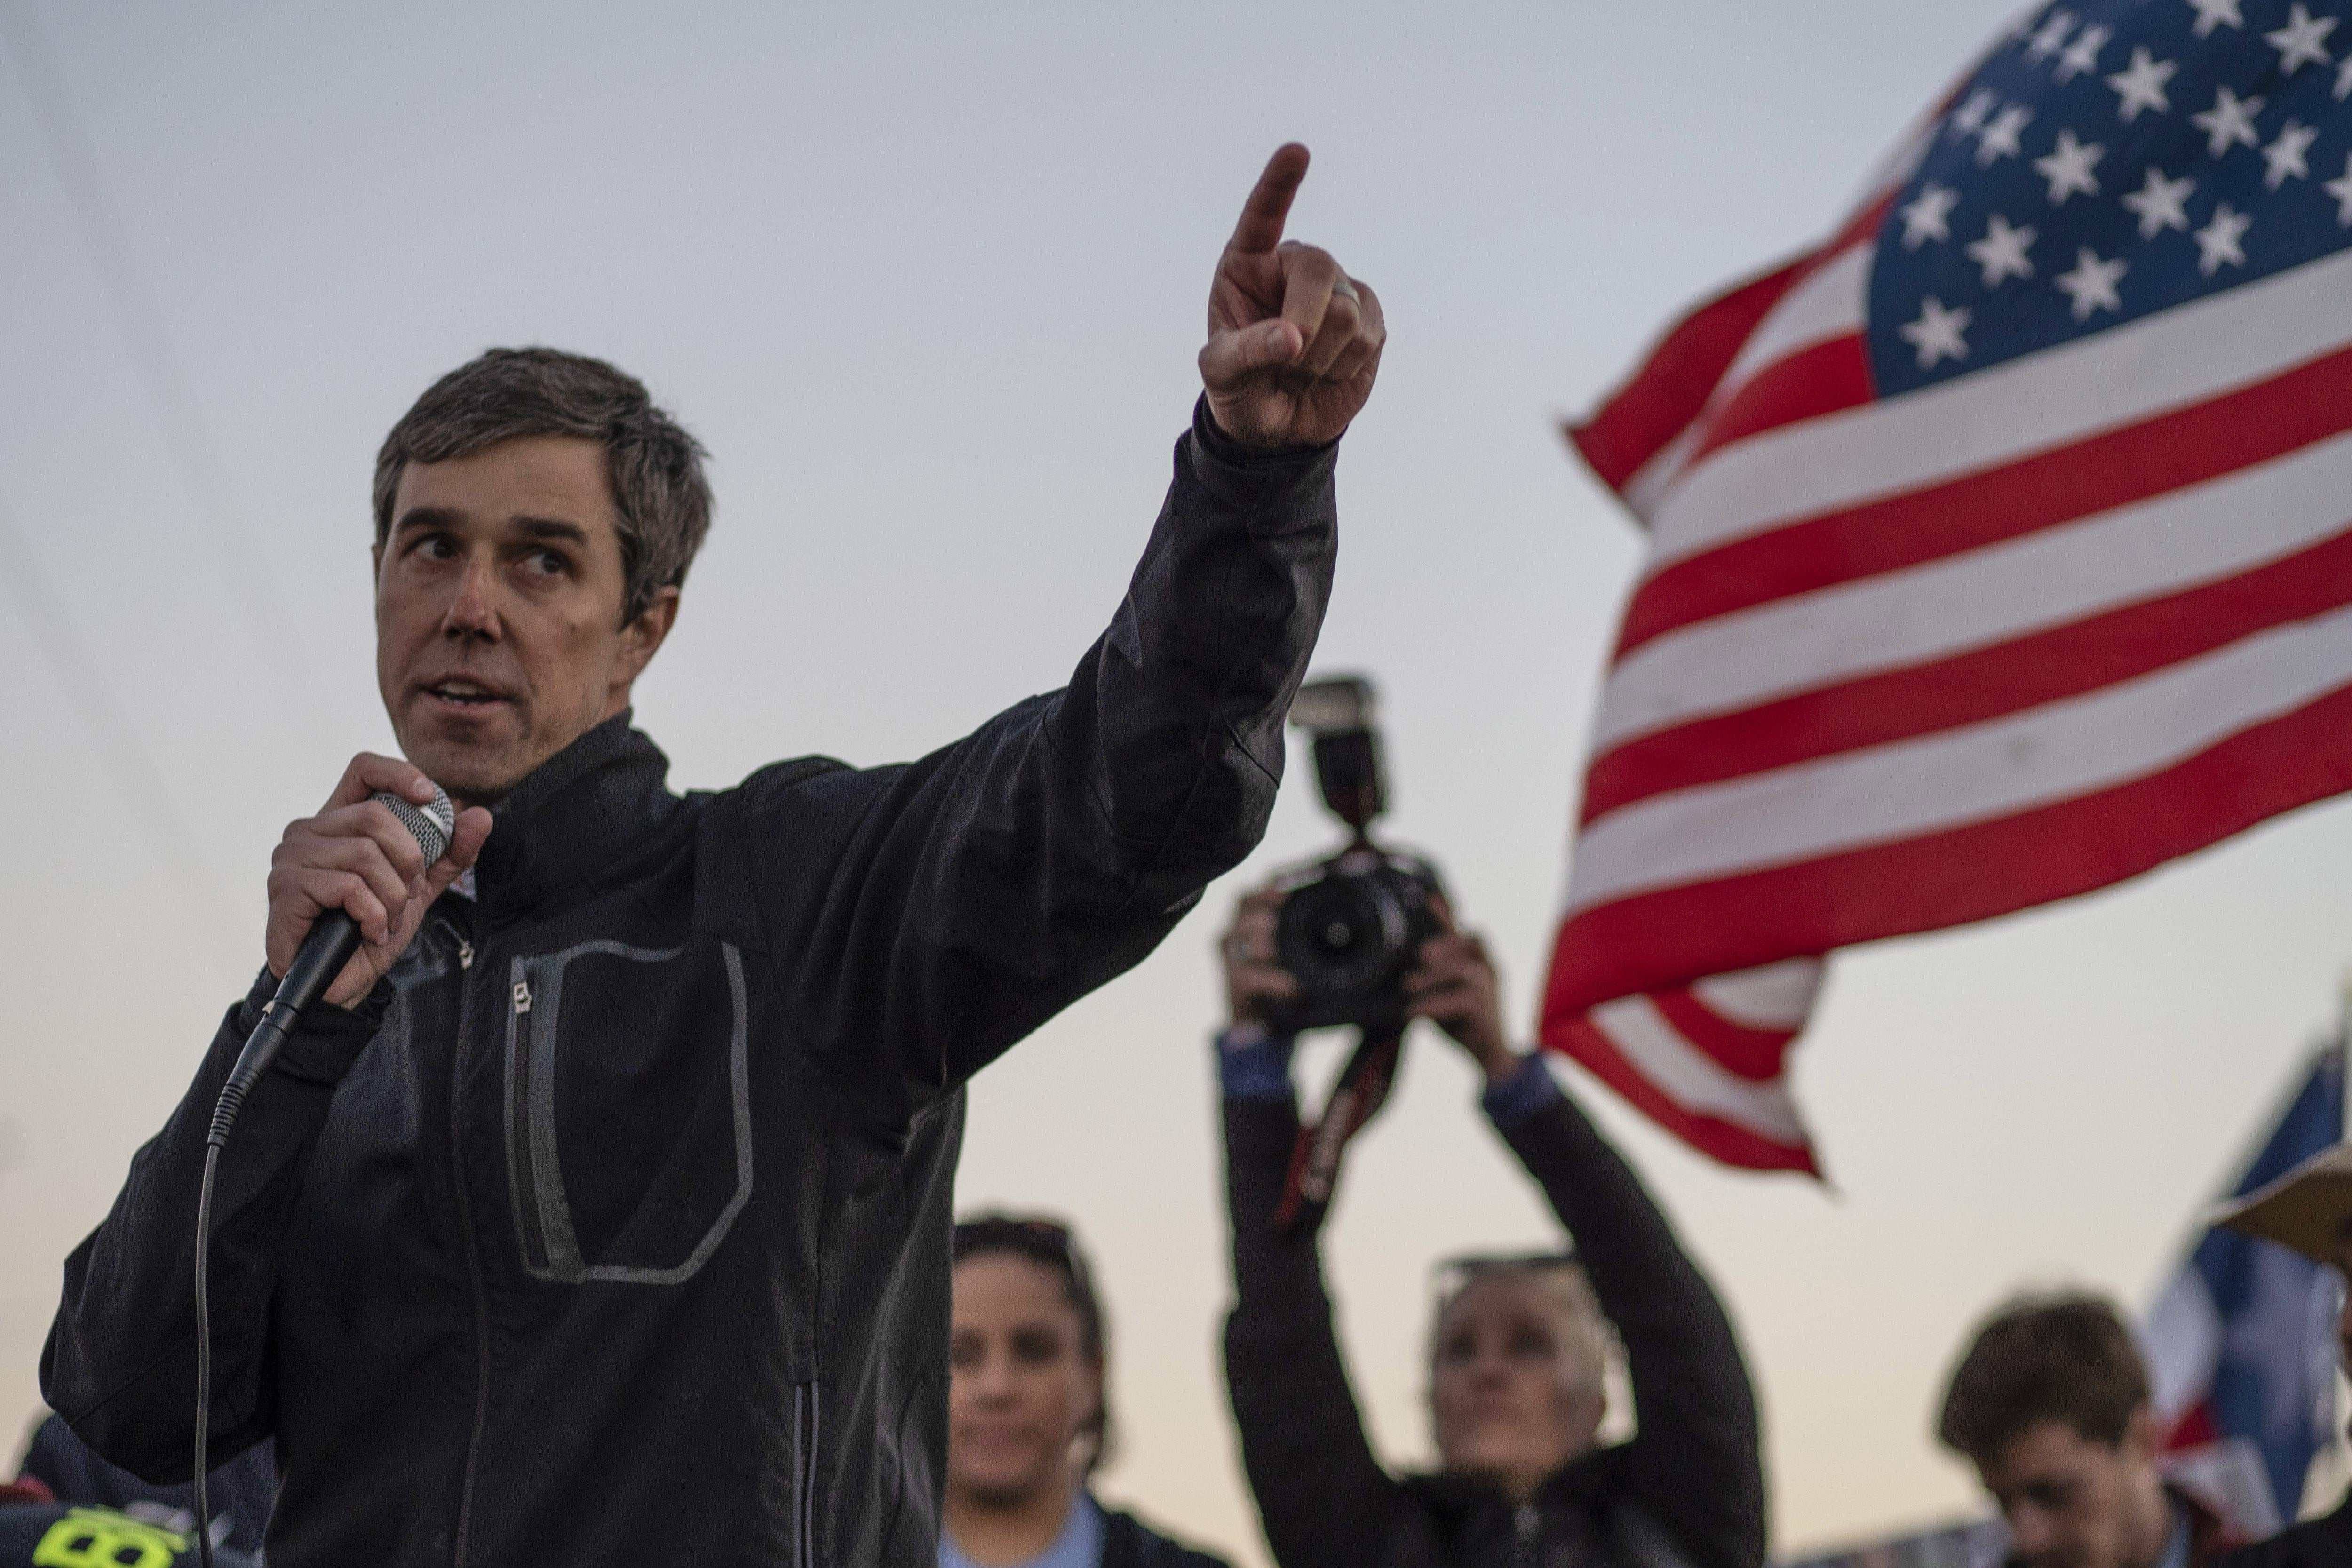 Beto O'Rourke speaks to a crowd of marchers during the anti-Trump 'March for Truth' in El Paso, Texas, on Feb. 11, 2019.